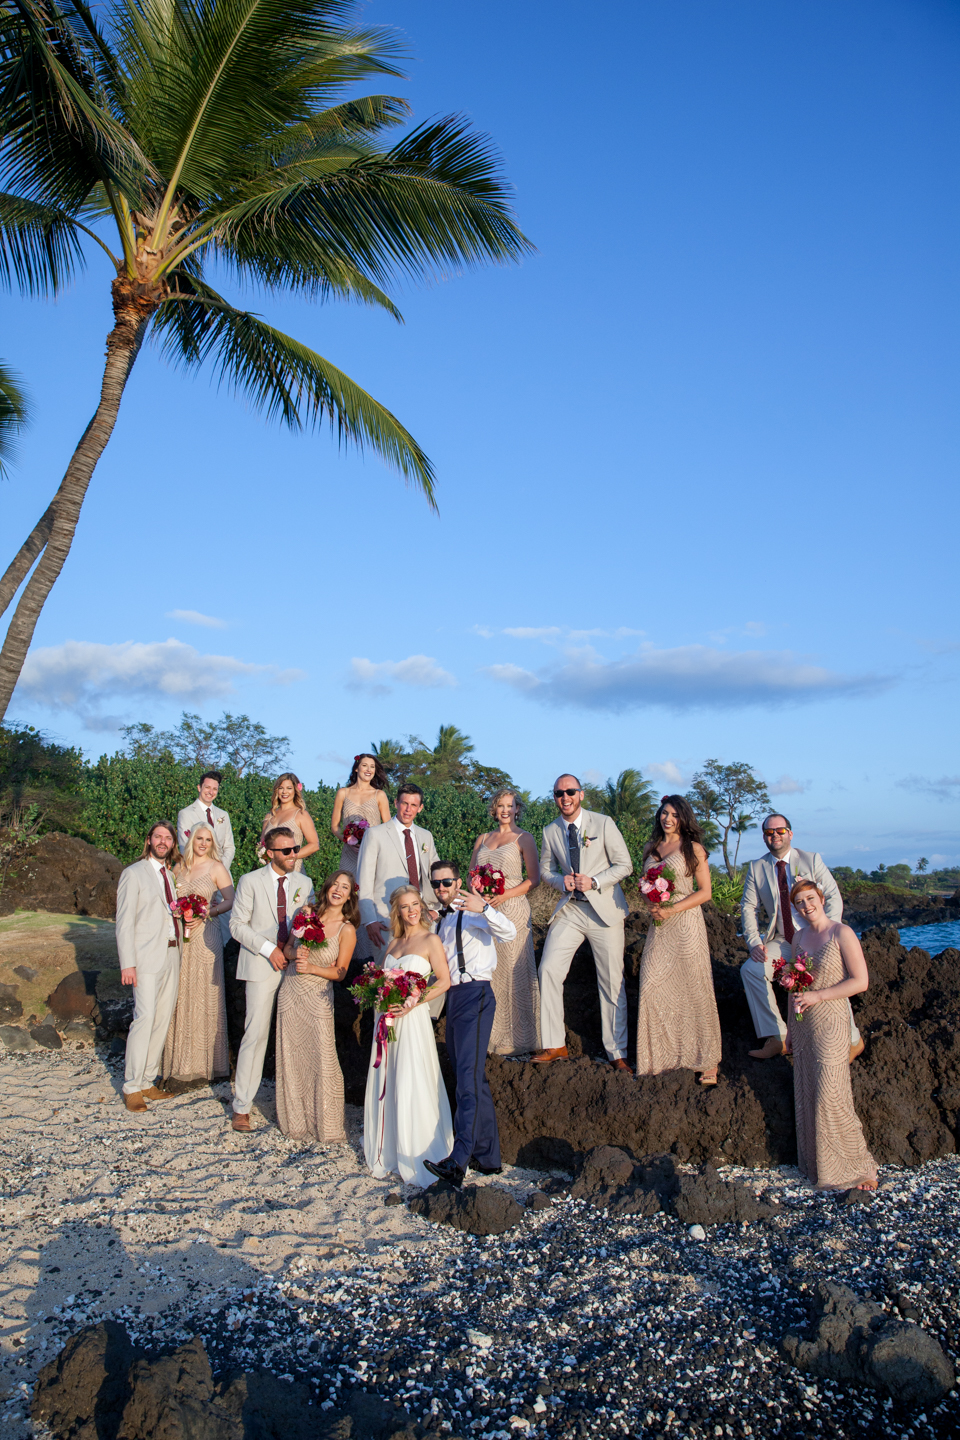 074_maui-wedding-photographer-kaua-photography